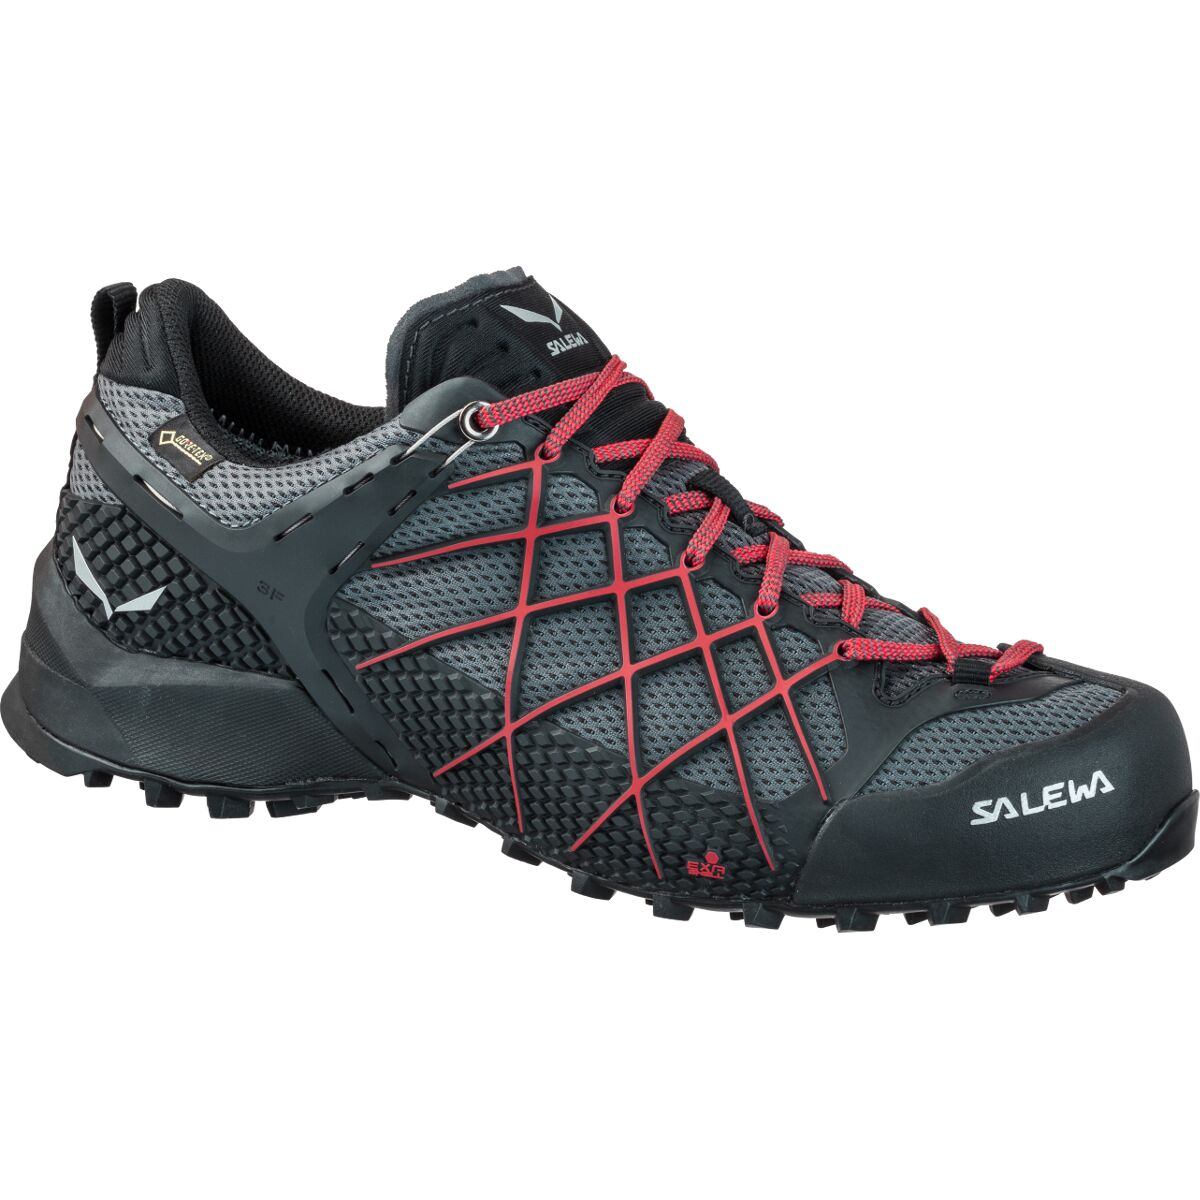 Кросівки Salewa MS Wildfire GTX